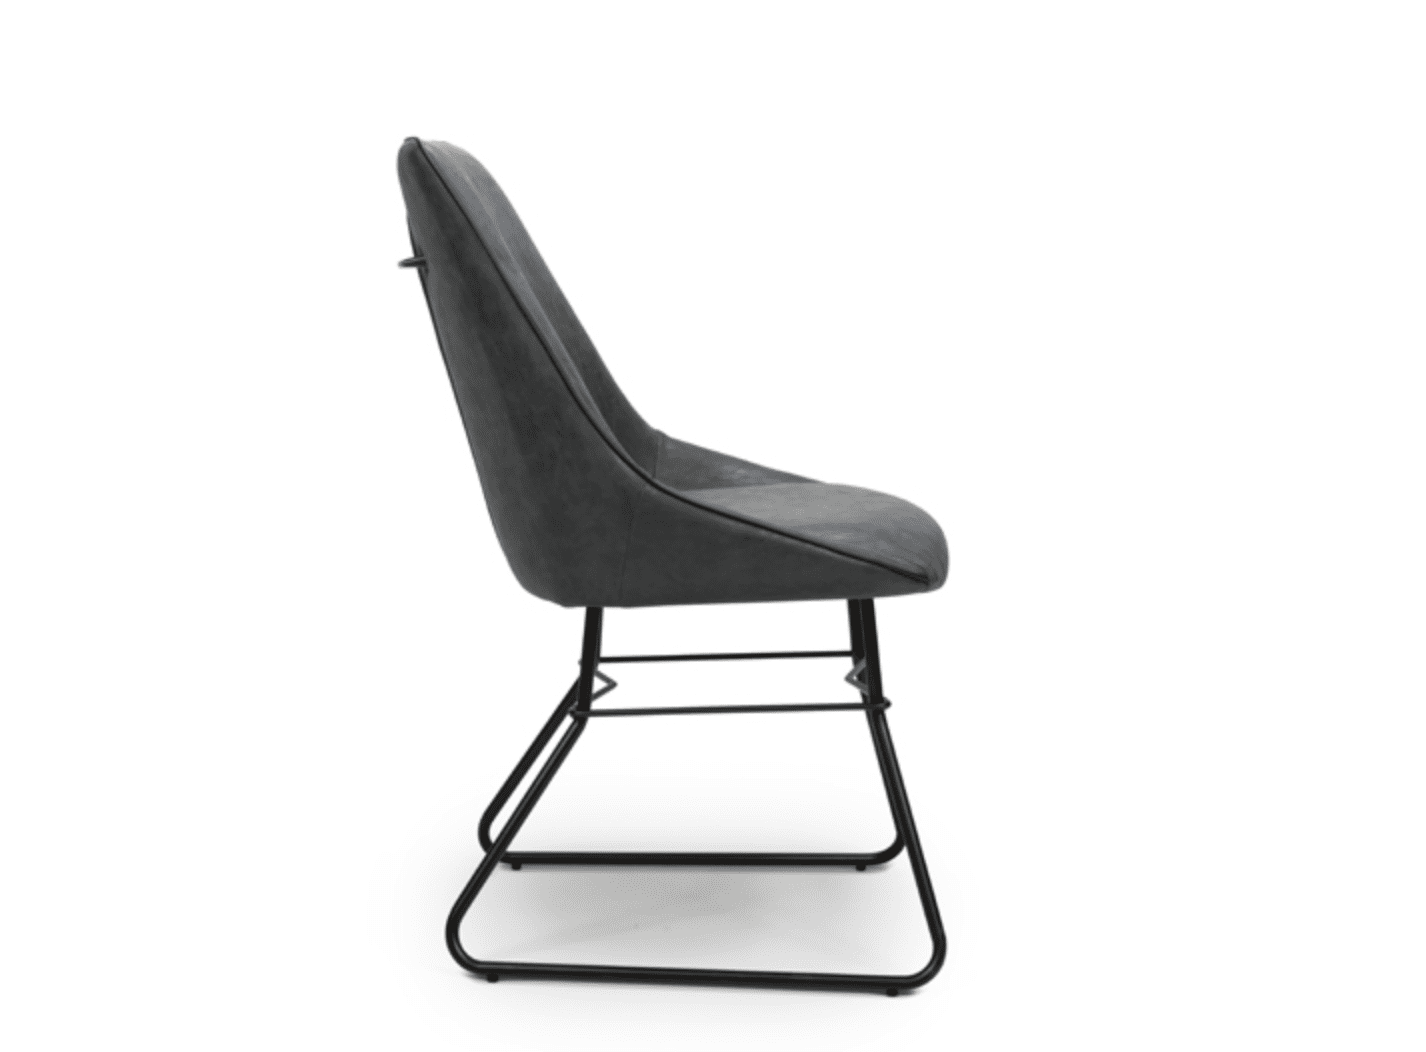 Cooper chair wax grey side